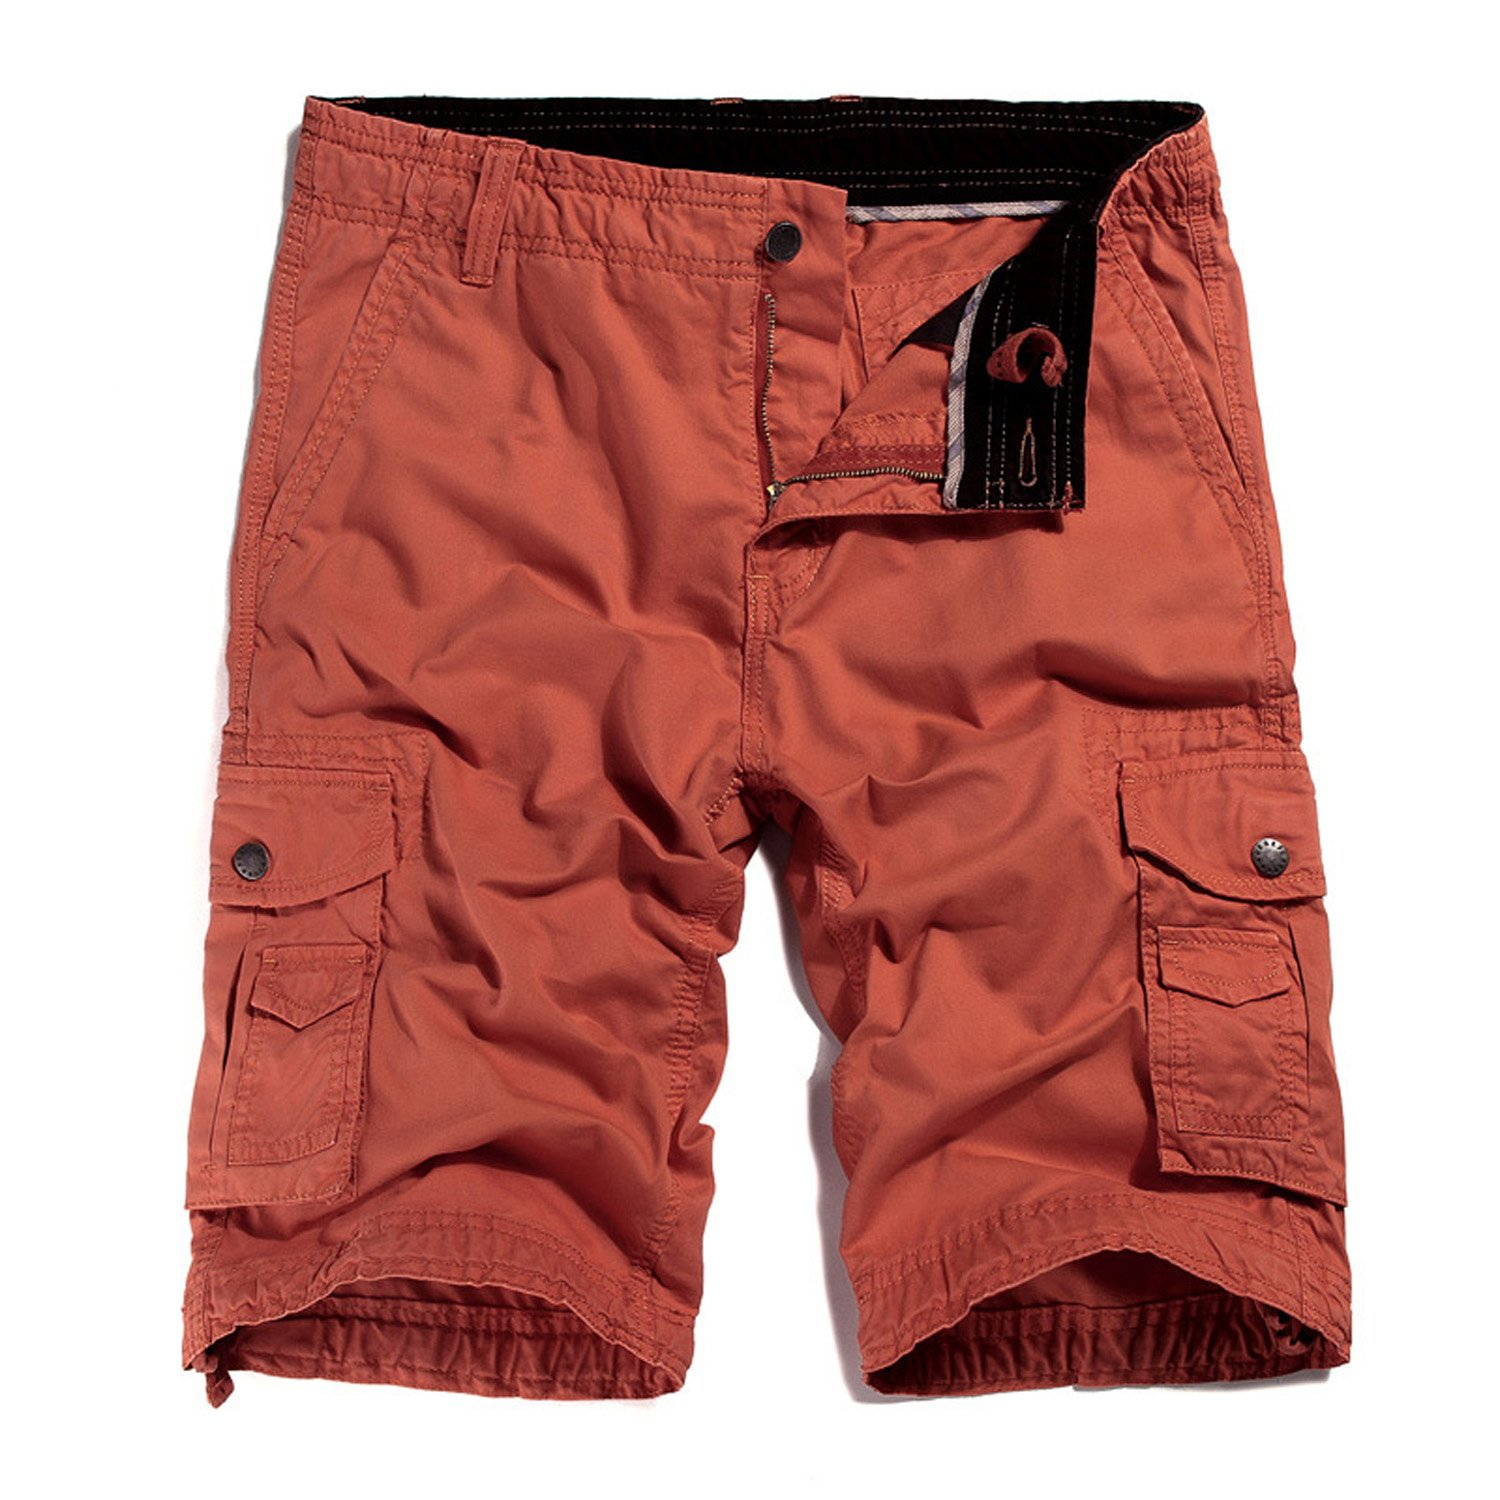 mtiyy Men's Casual Cargo Shorts Loose Fit Straight Multi-Pocket Cotton Outdoor Wear Brick Red 36